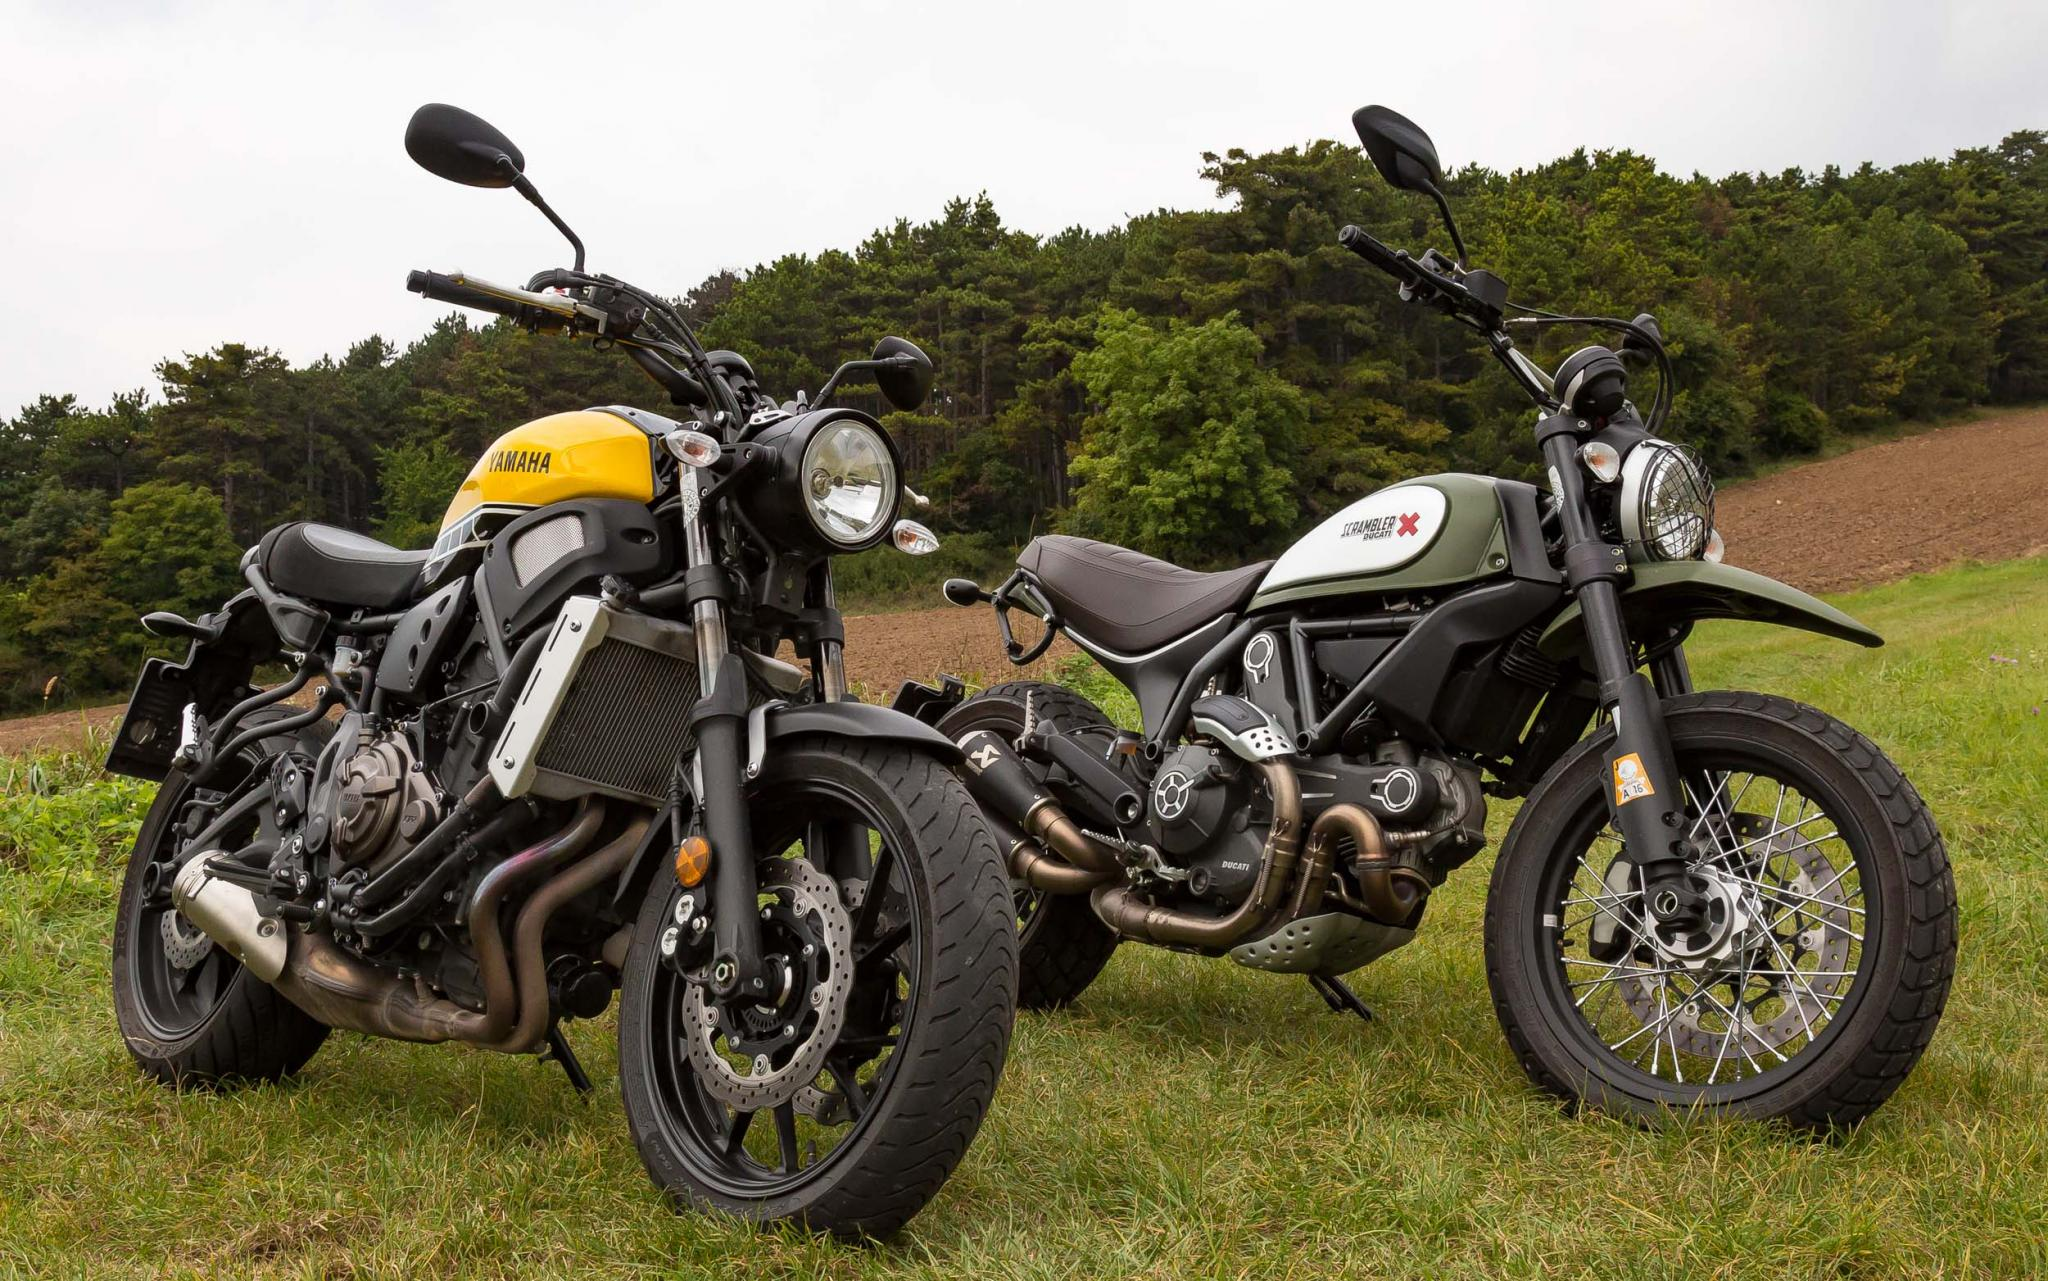 ducati scrambler vs yamaha xsr 700. Black Bedroom Furniture Sets. Home Design Ideas